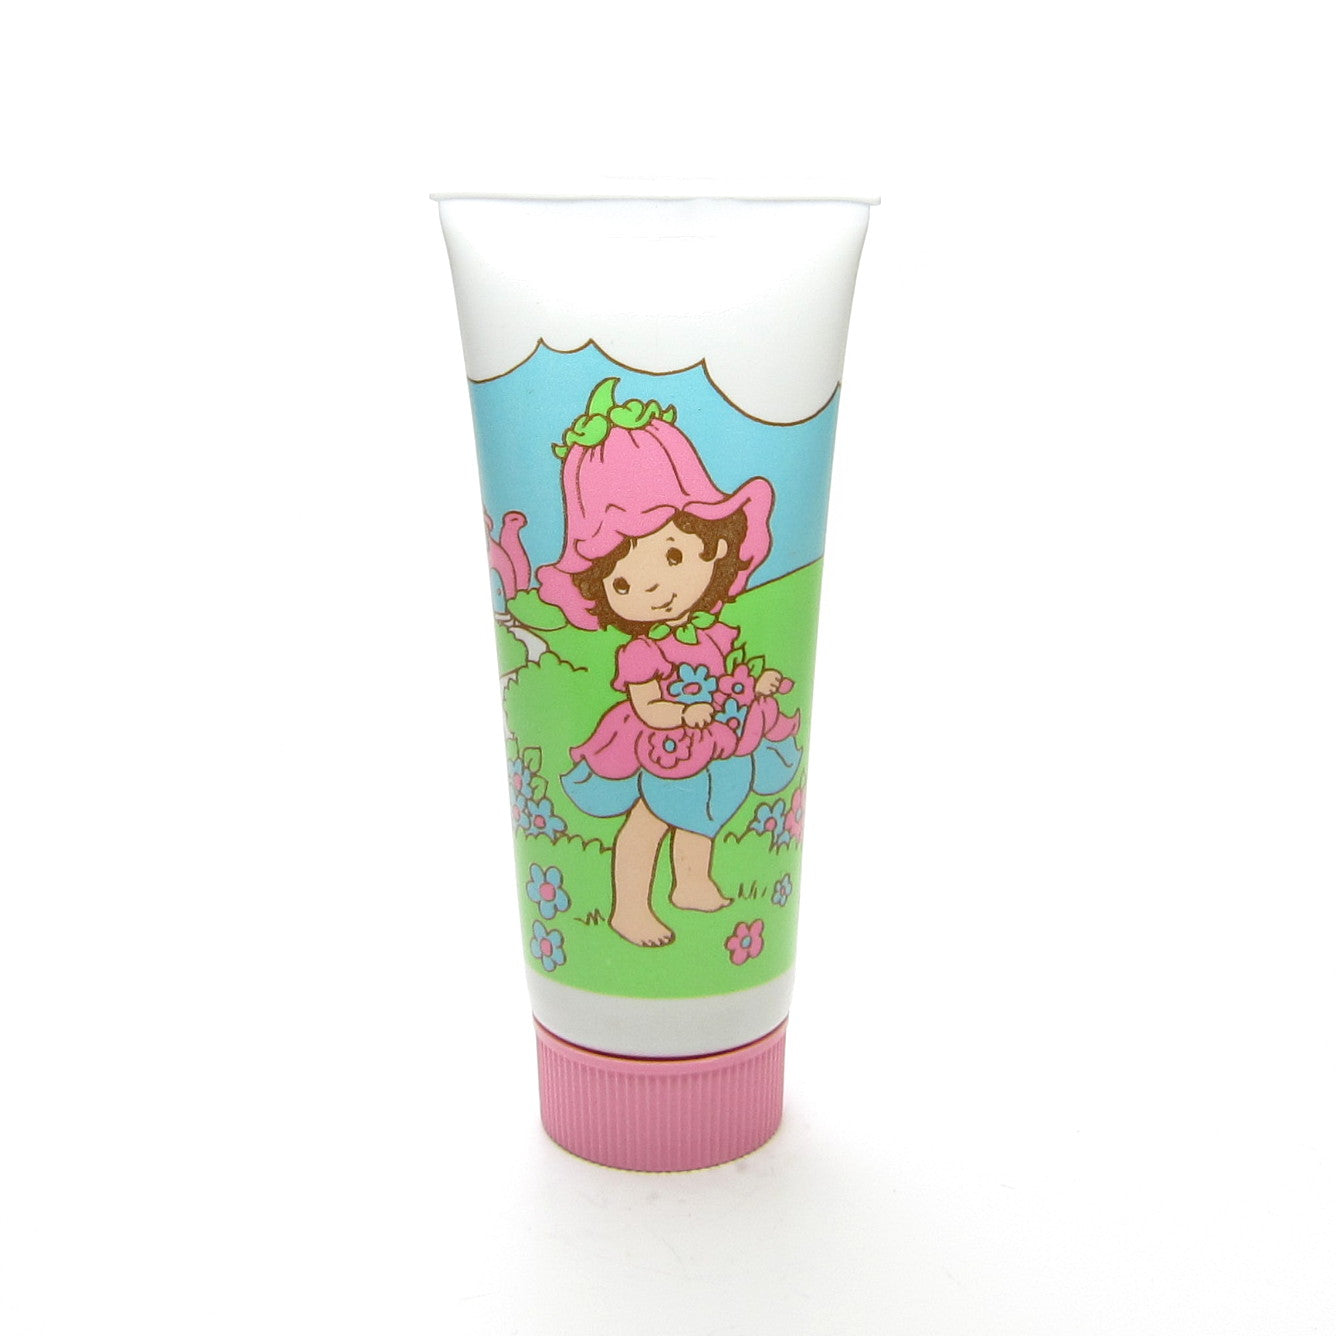 Avon Little Blossom Hand Cream strawberry scented lotion